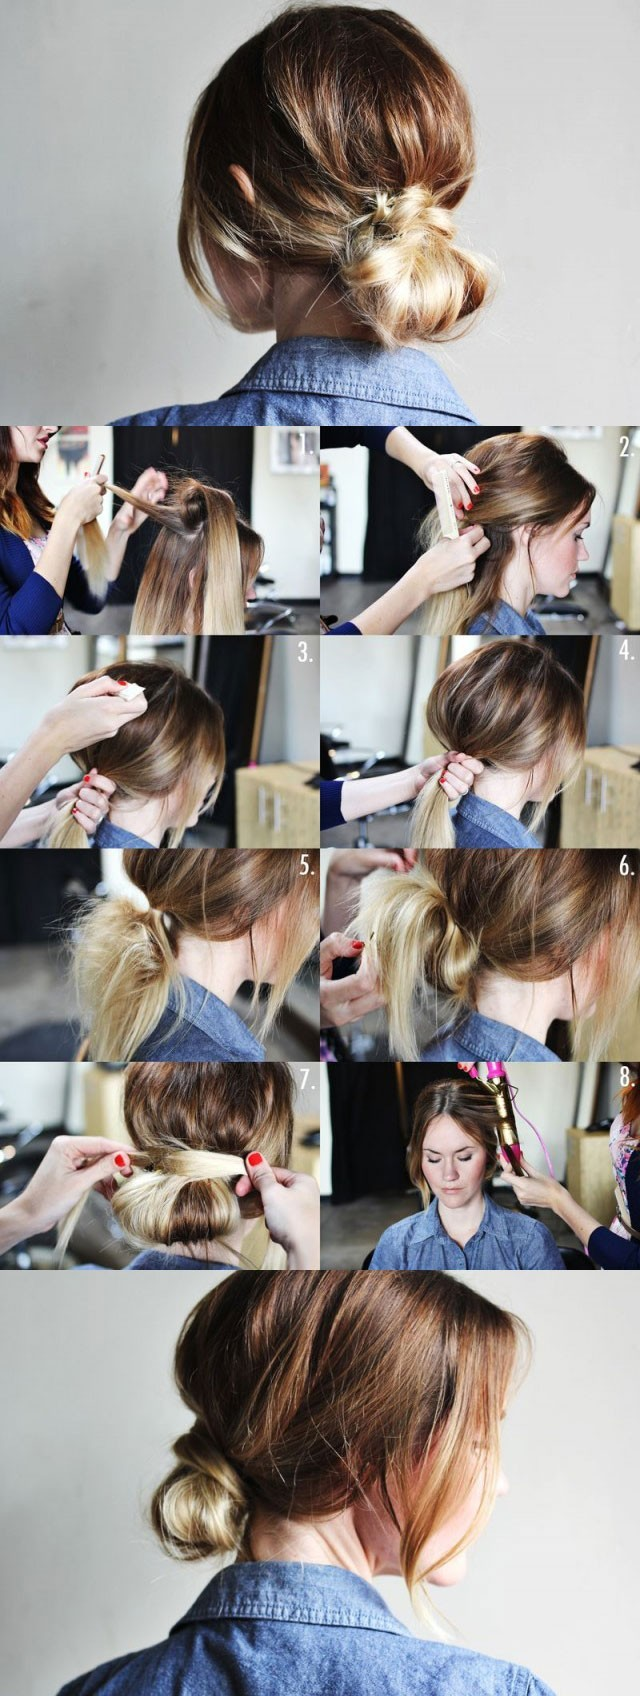 Low Bun Updo Hairstyle Tutorial: Easy Hairstyles for Women